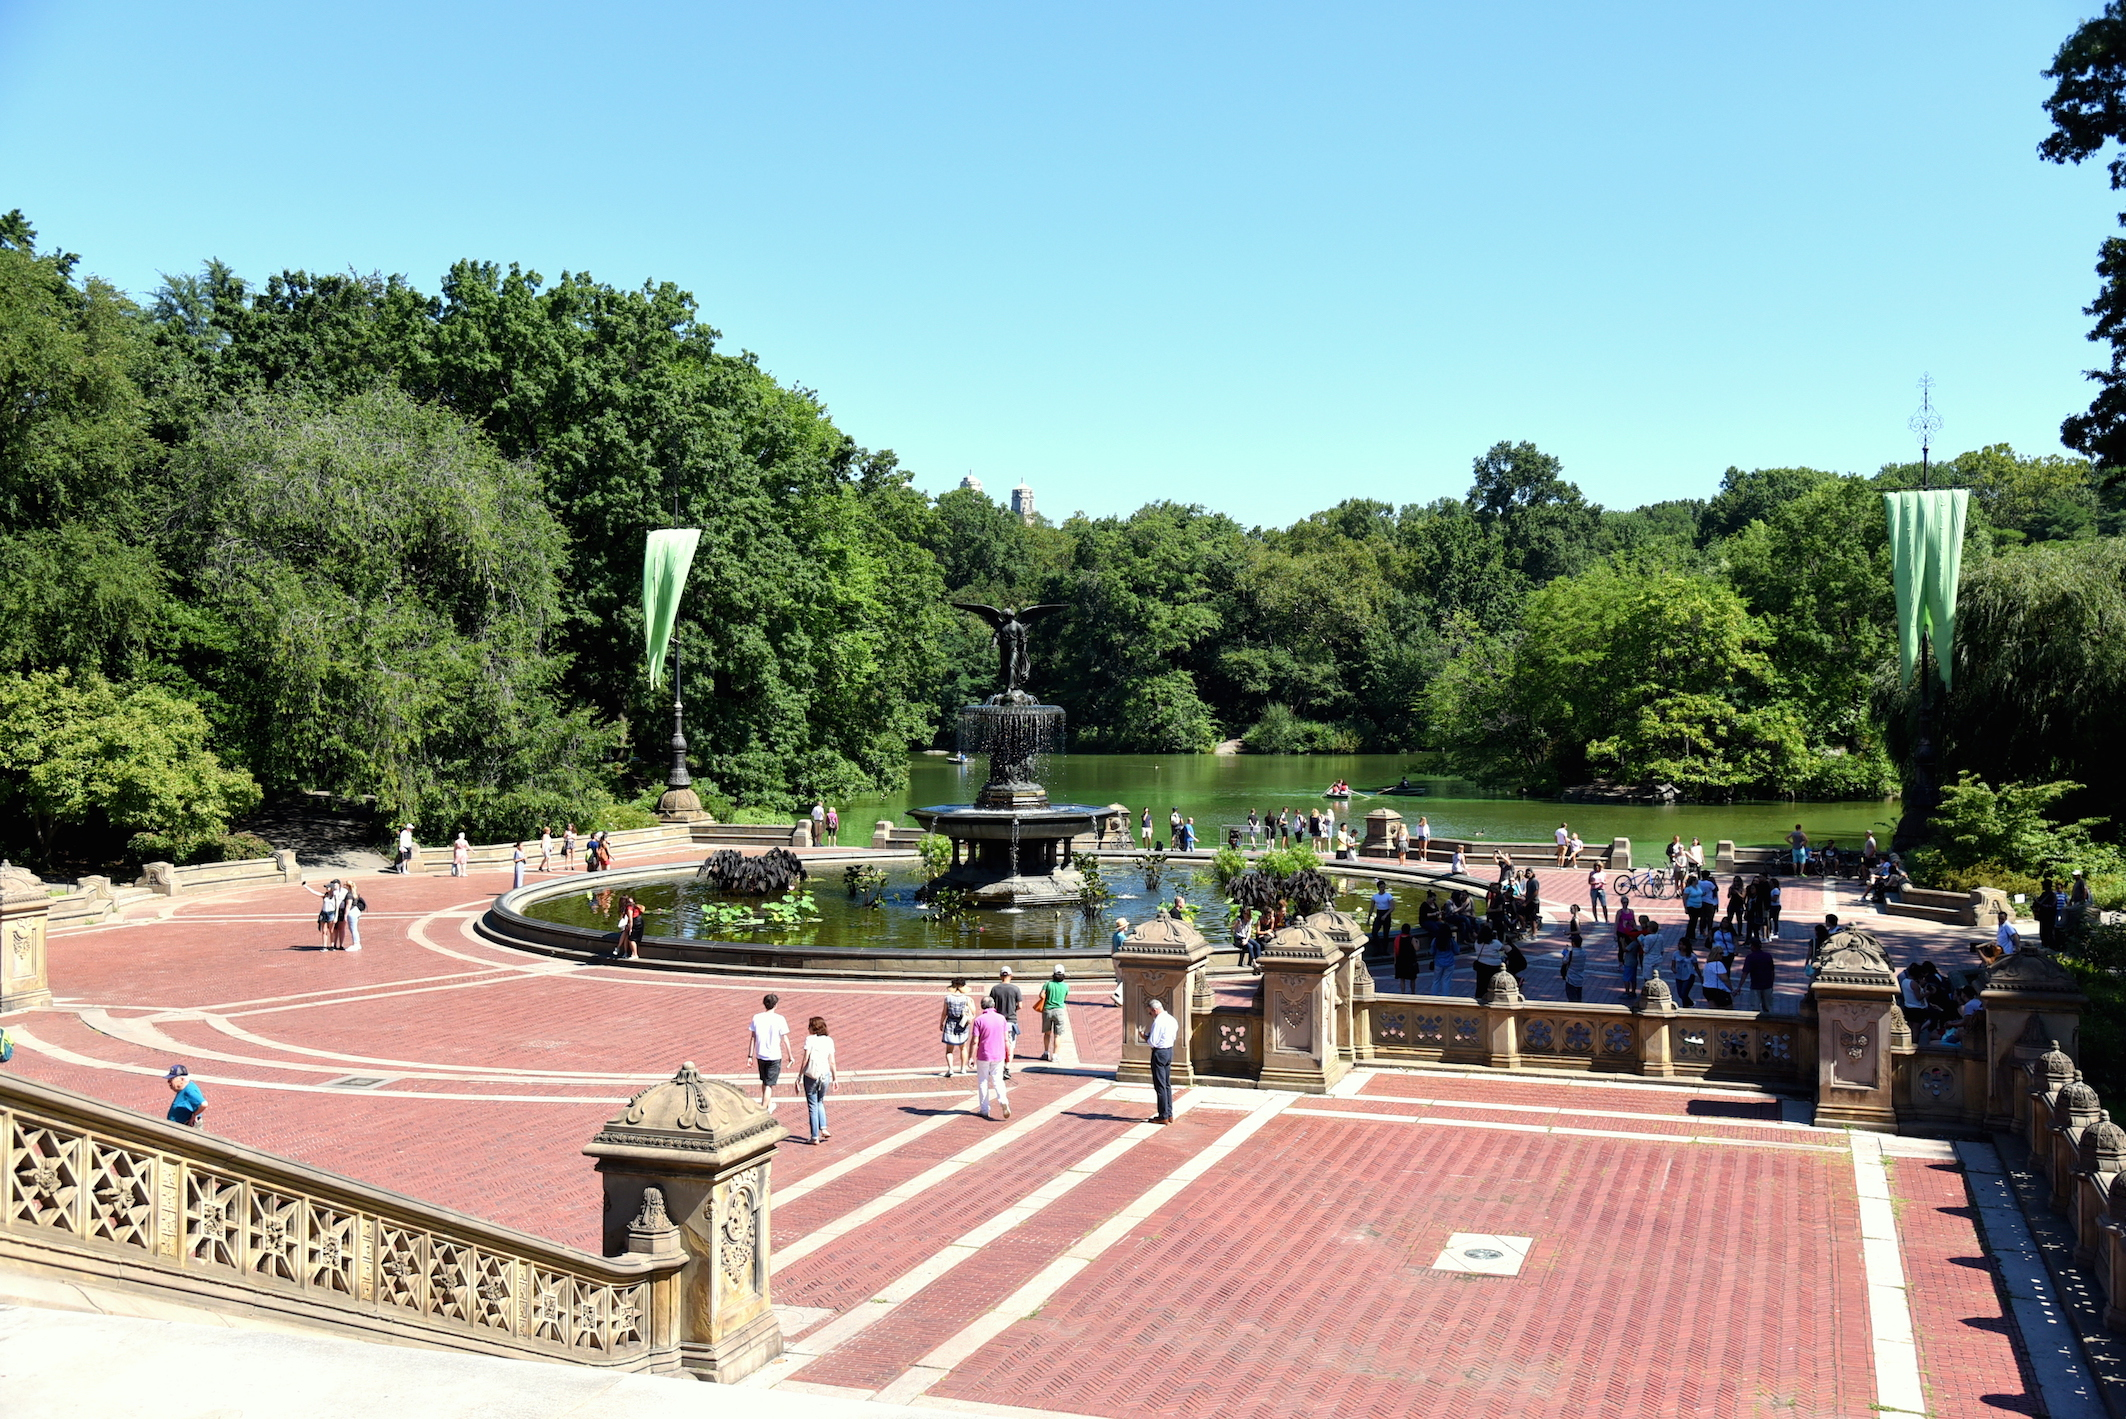 Summer in New York in Central Park